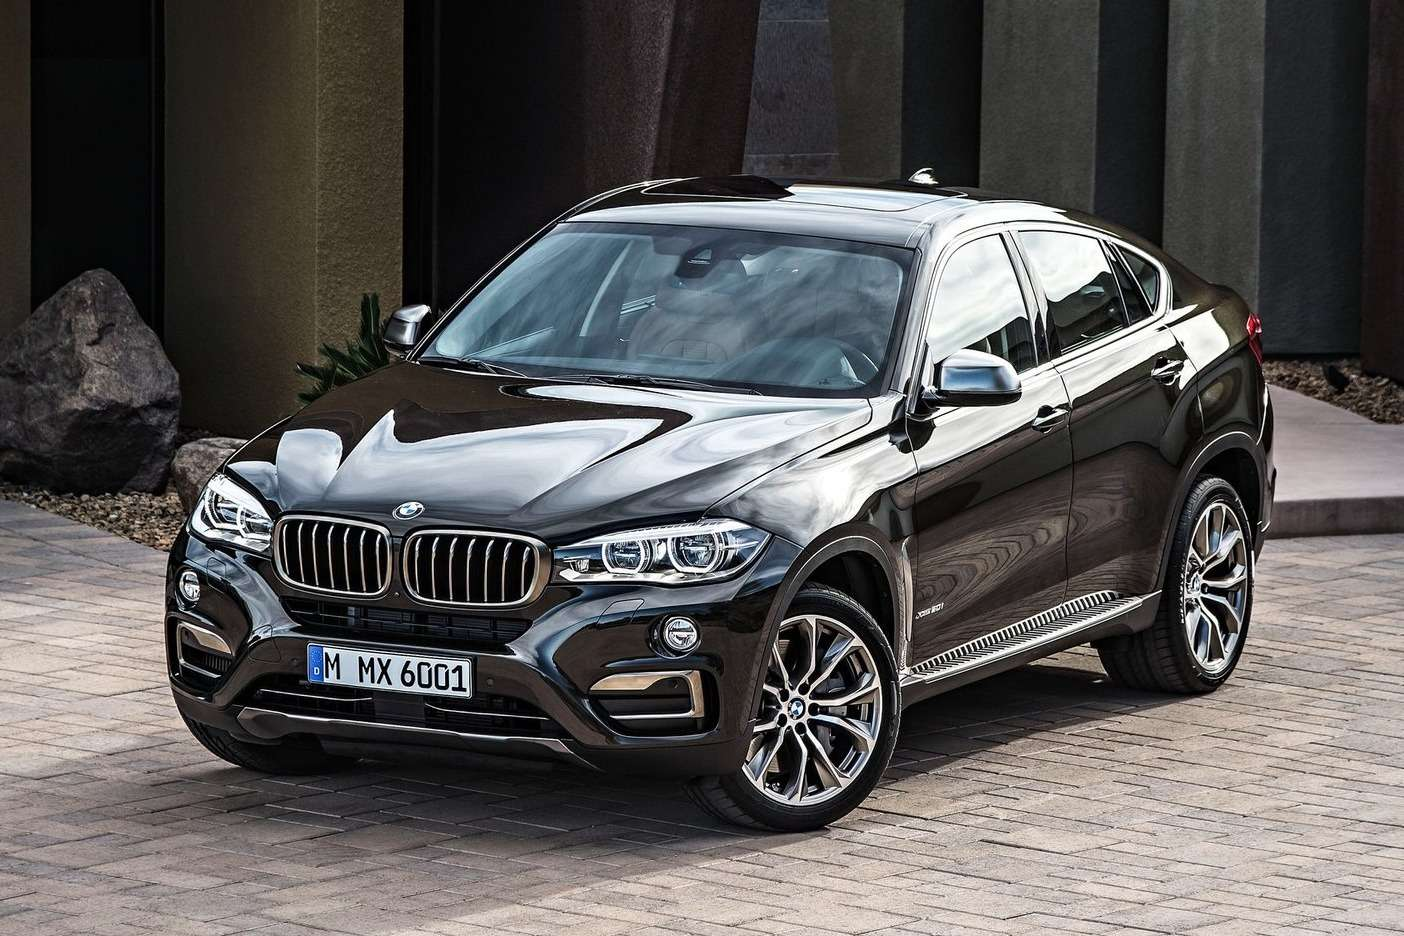 BMW-X6_2015_1600x1200_wallpaper_07